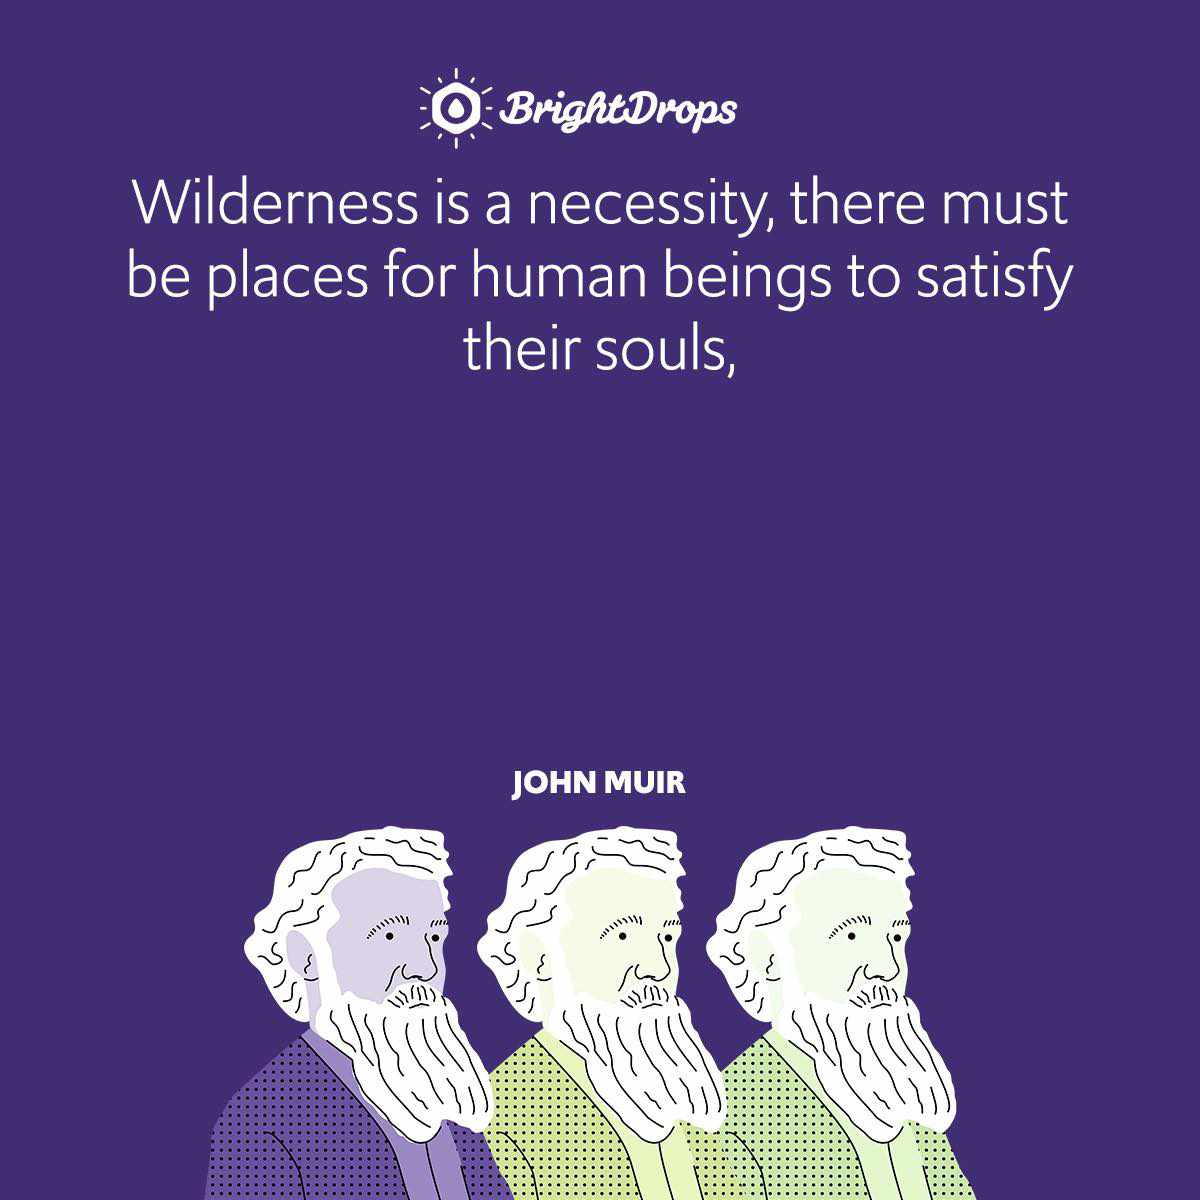 Wilderness is a necessity, there must be places for human beings to satisfy their souls,